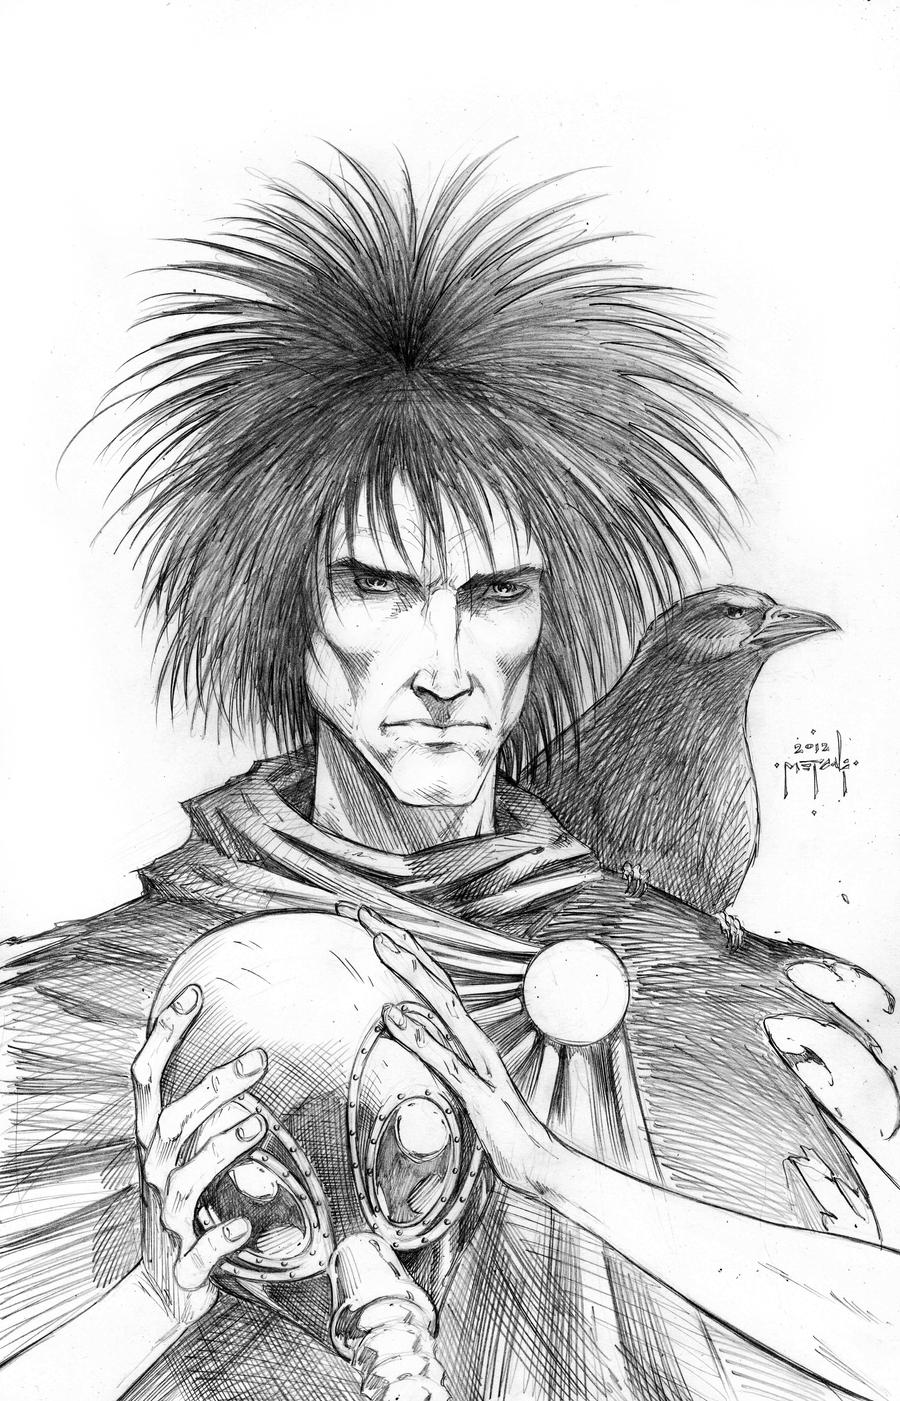 Sandman portrait - Jason Metcalf by JasonMetcalf